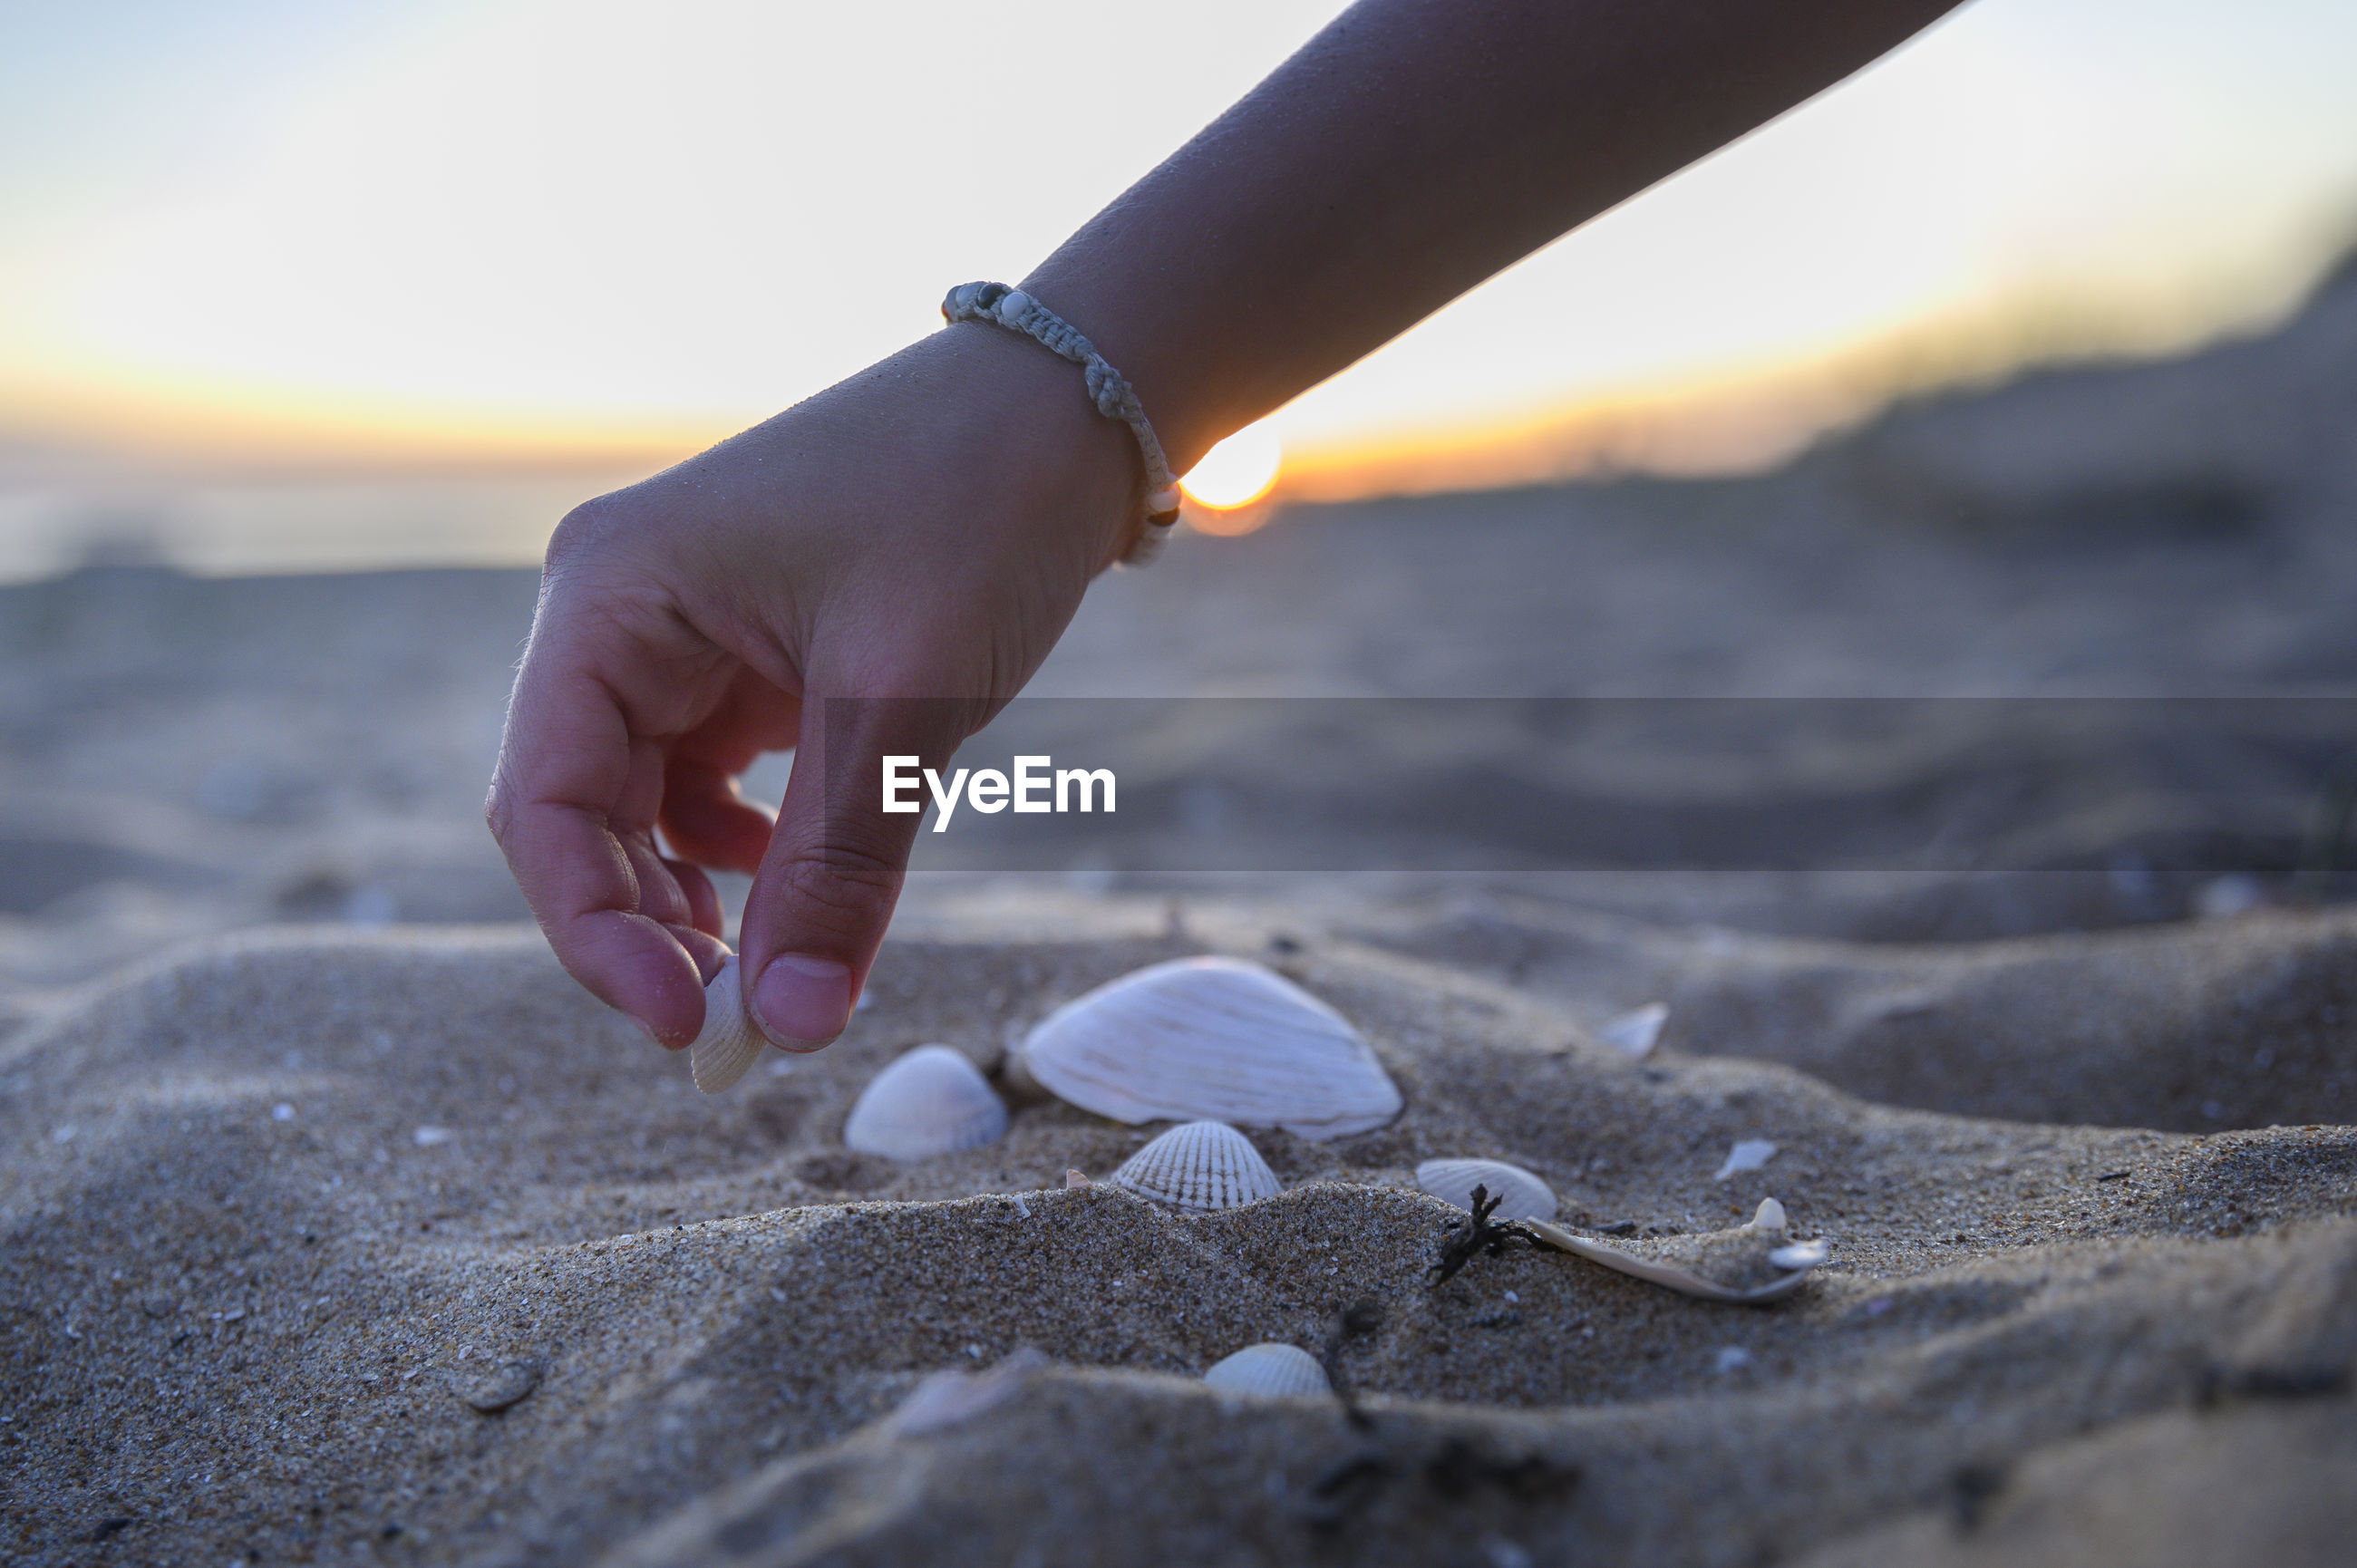 Close-up of hand holding seashell on sand at beach against sky during sunset